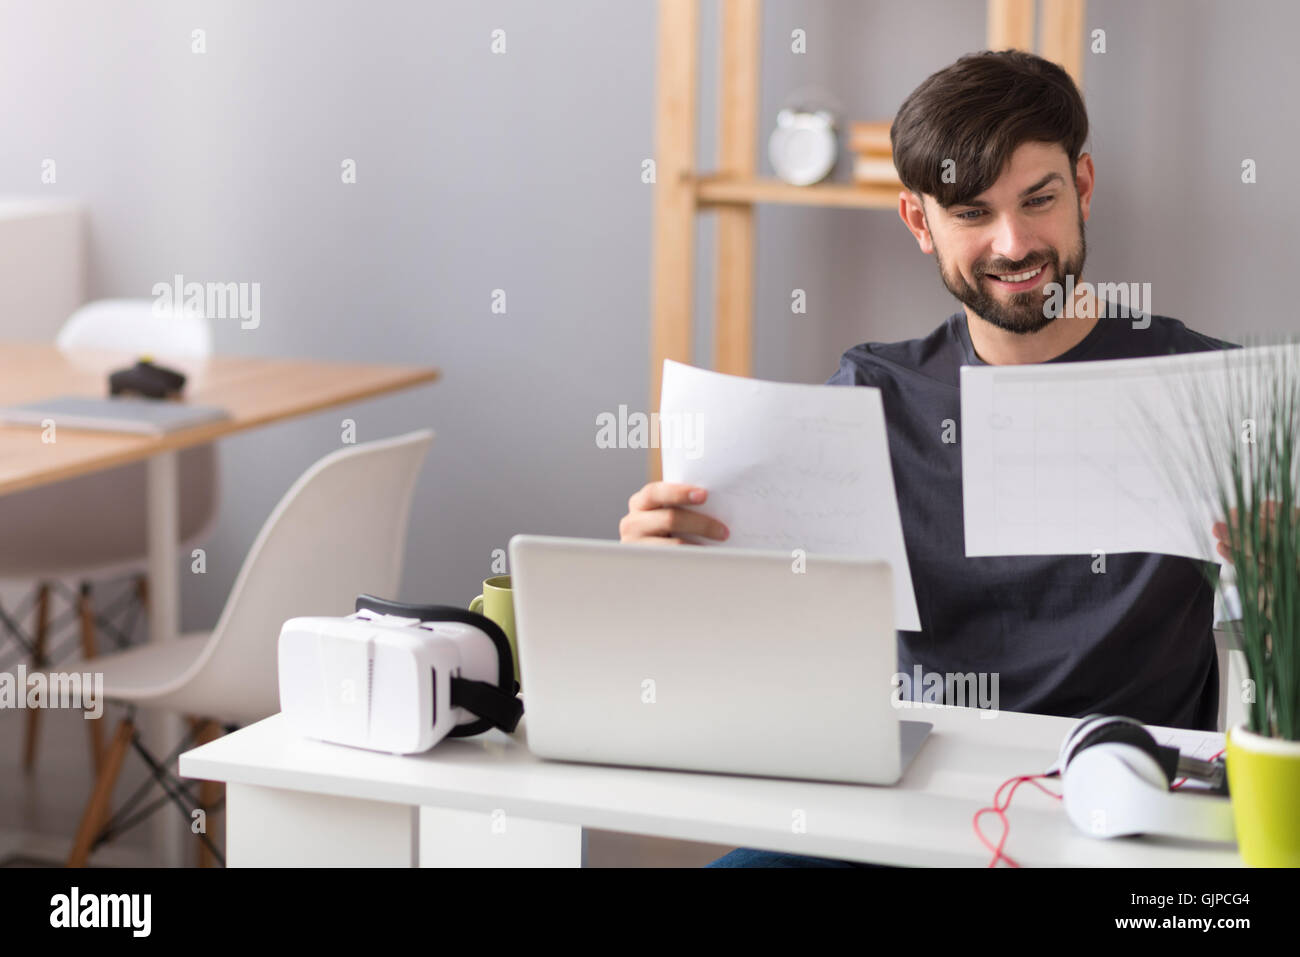 Cheerful man working in the office - Stock Image